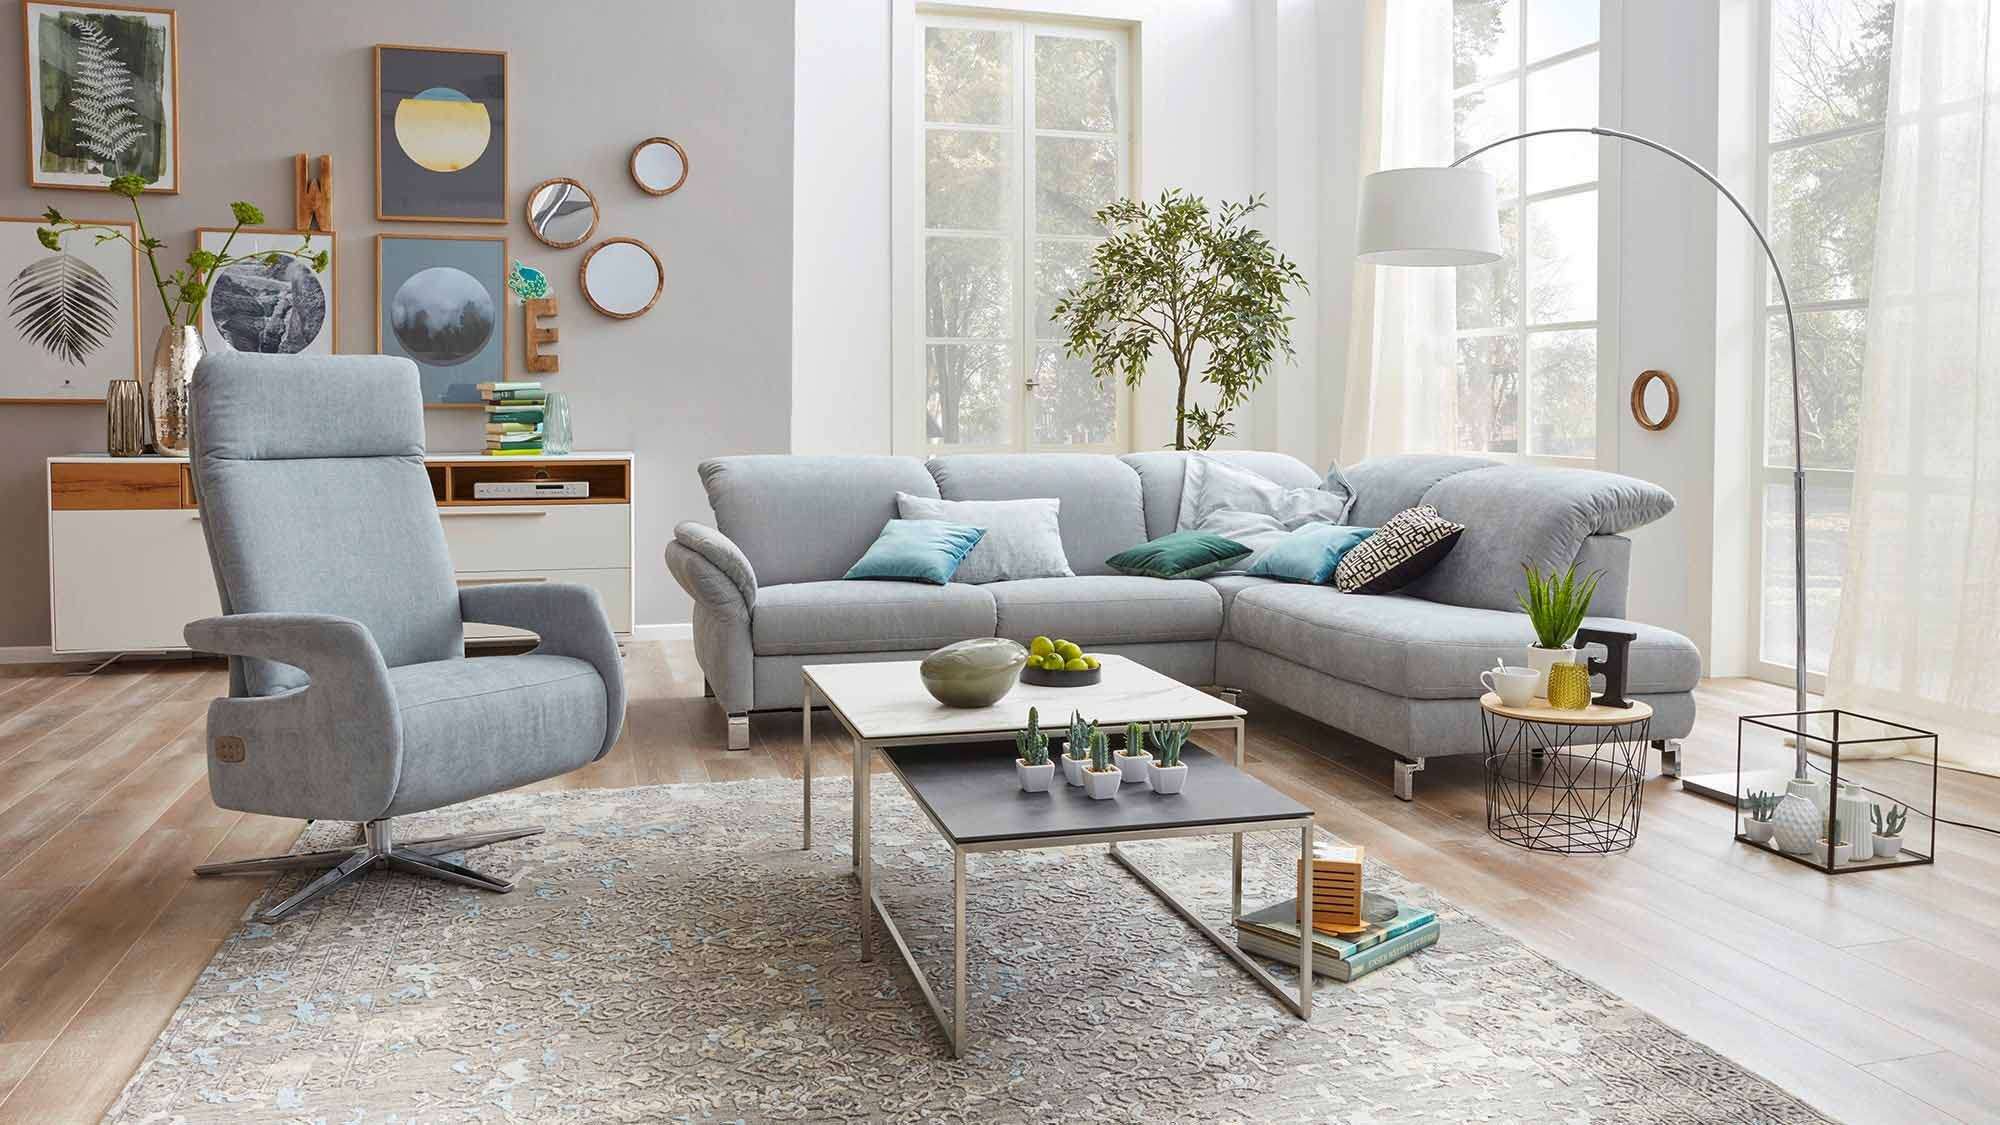 Suche Sofa Interliving Sofa Serie 4101 Interliving